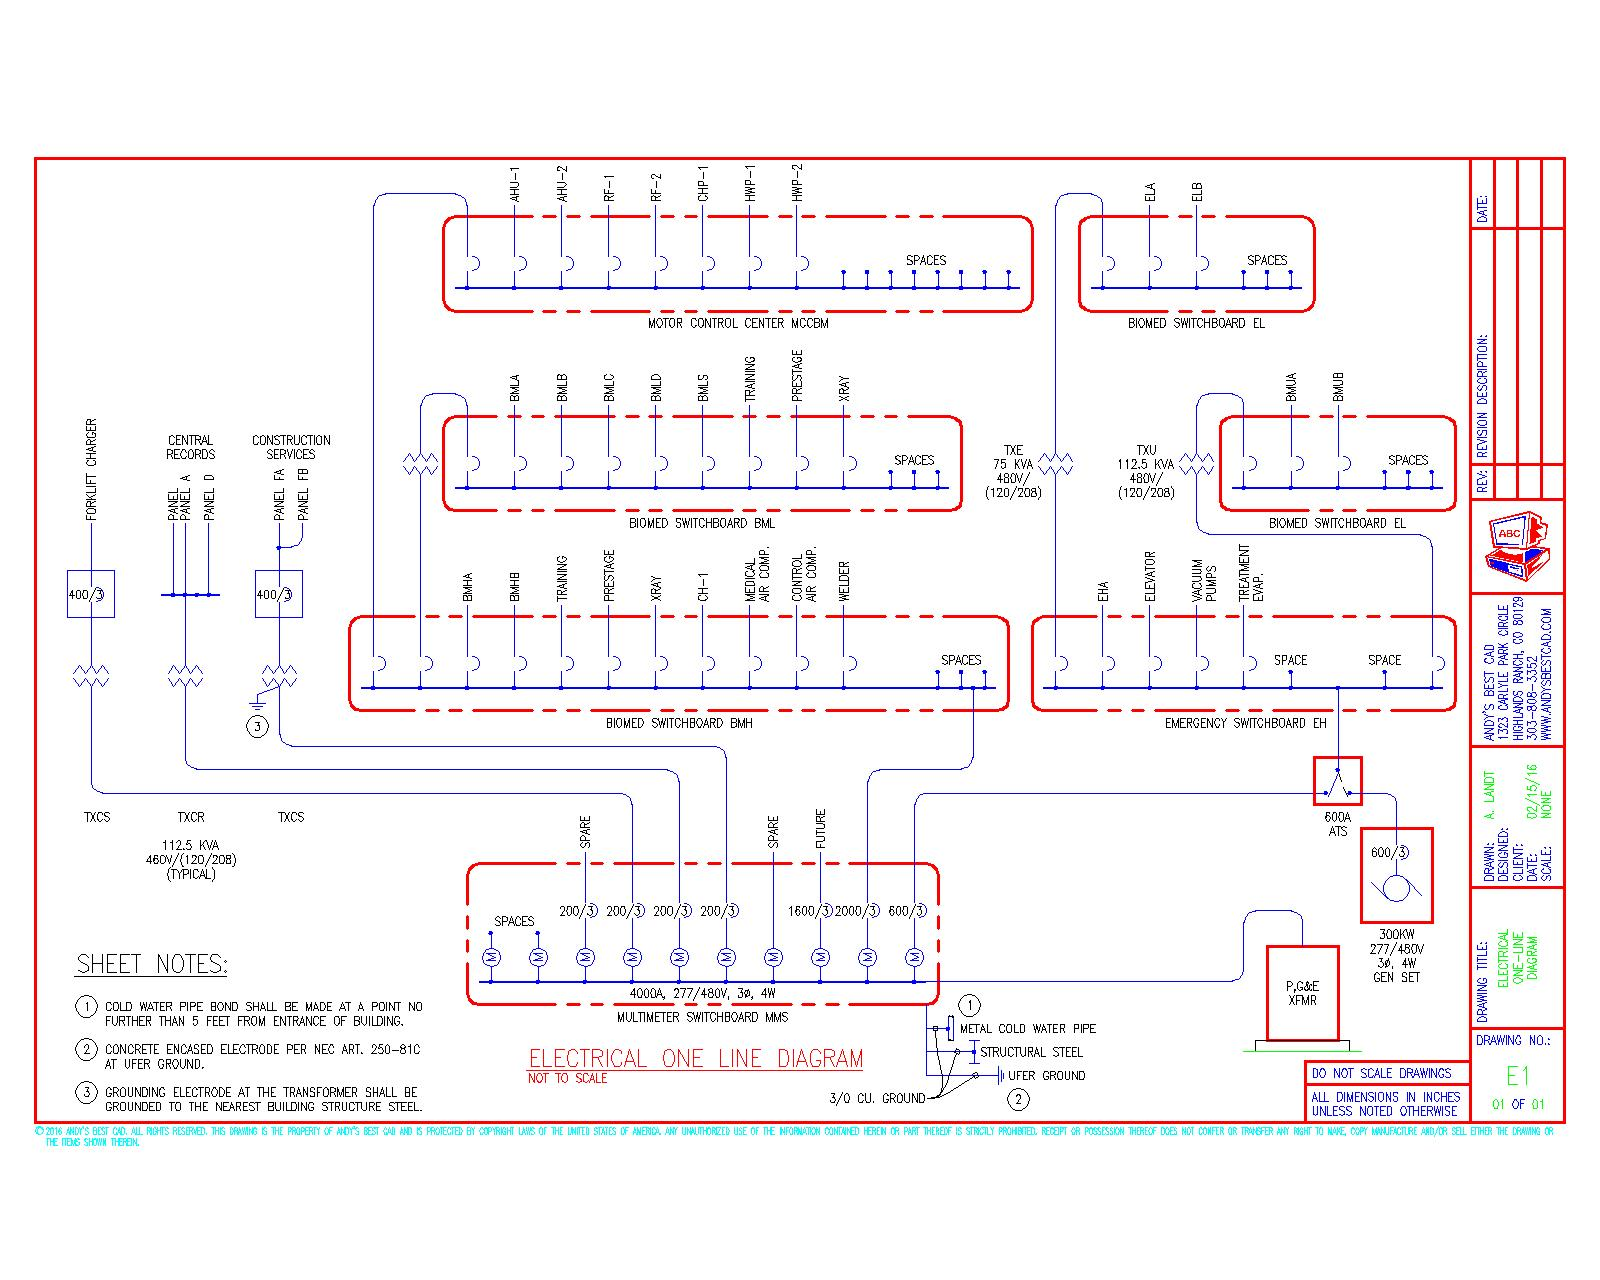 Electrical Drawing at GetDrawingscom  Free for personal